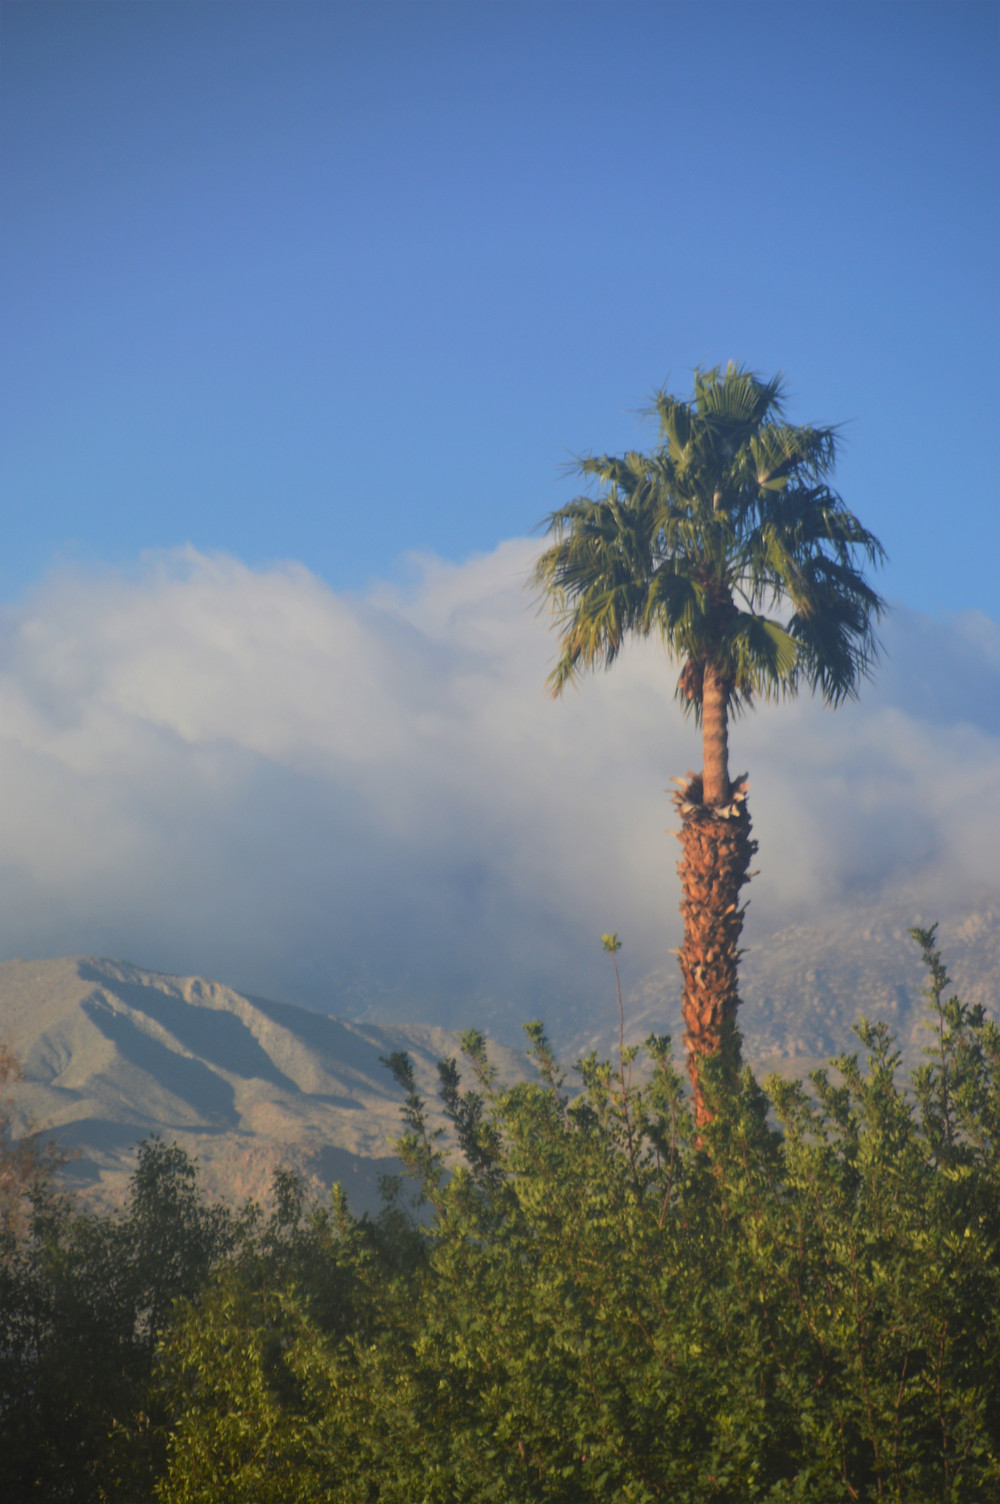 Clouds over the San Jacinto Mountains viewed from Palm Desert